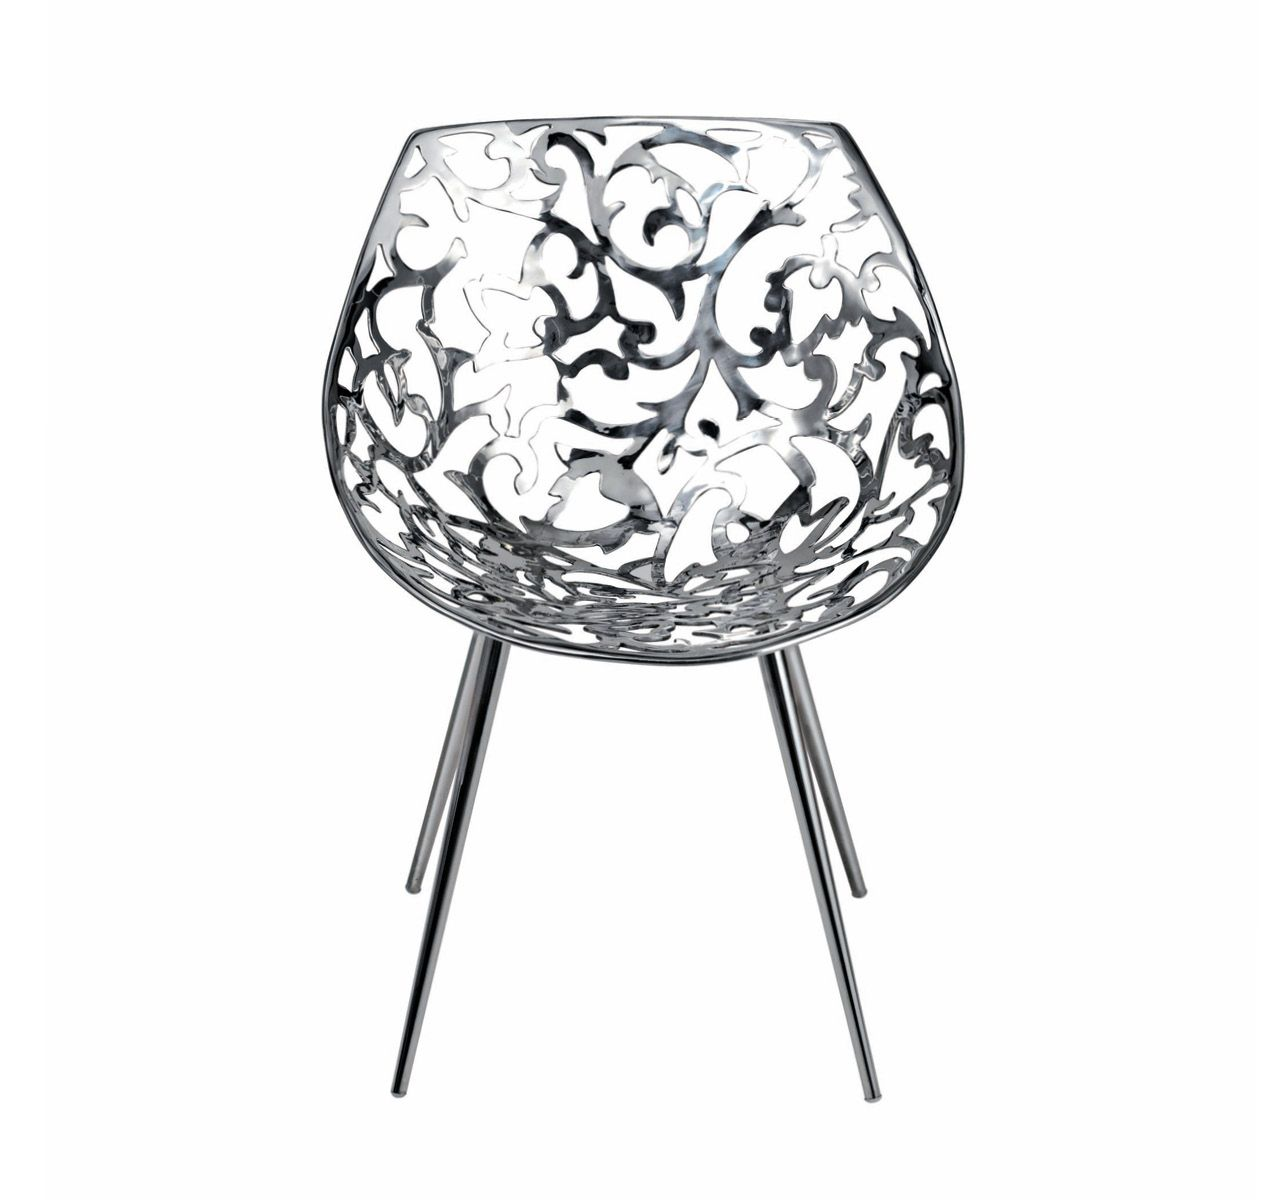 Miss Lacy - Chair Stainless Steel